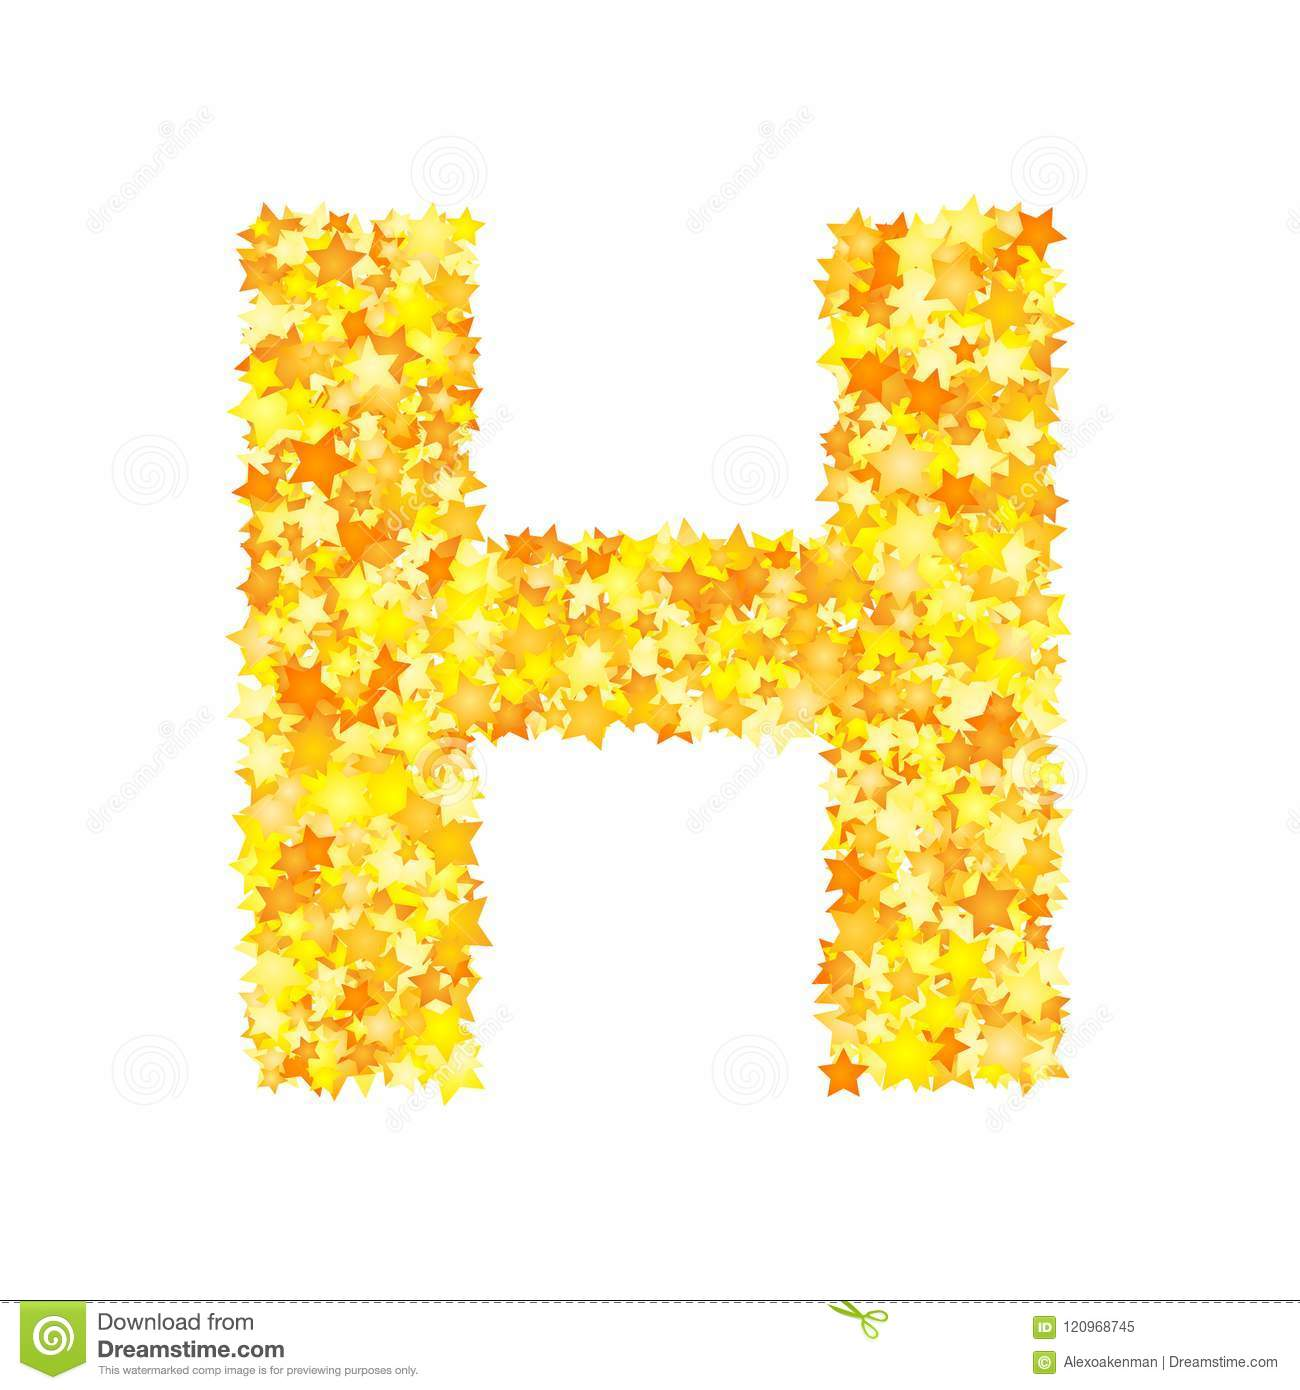 Vector yellow stars font, letter H